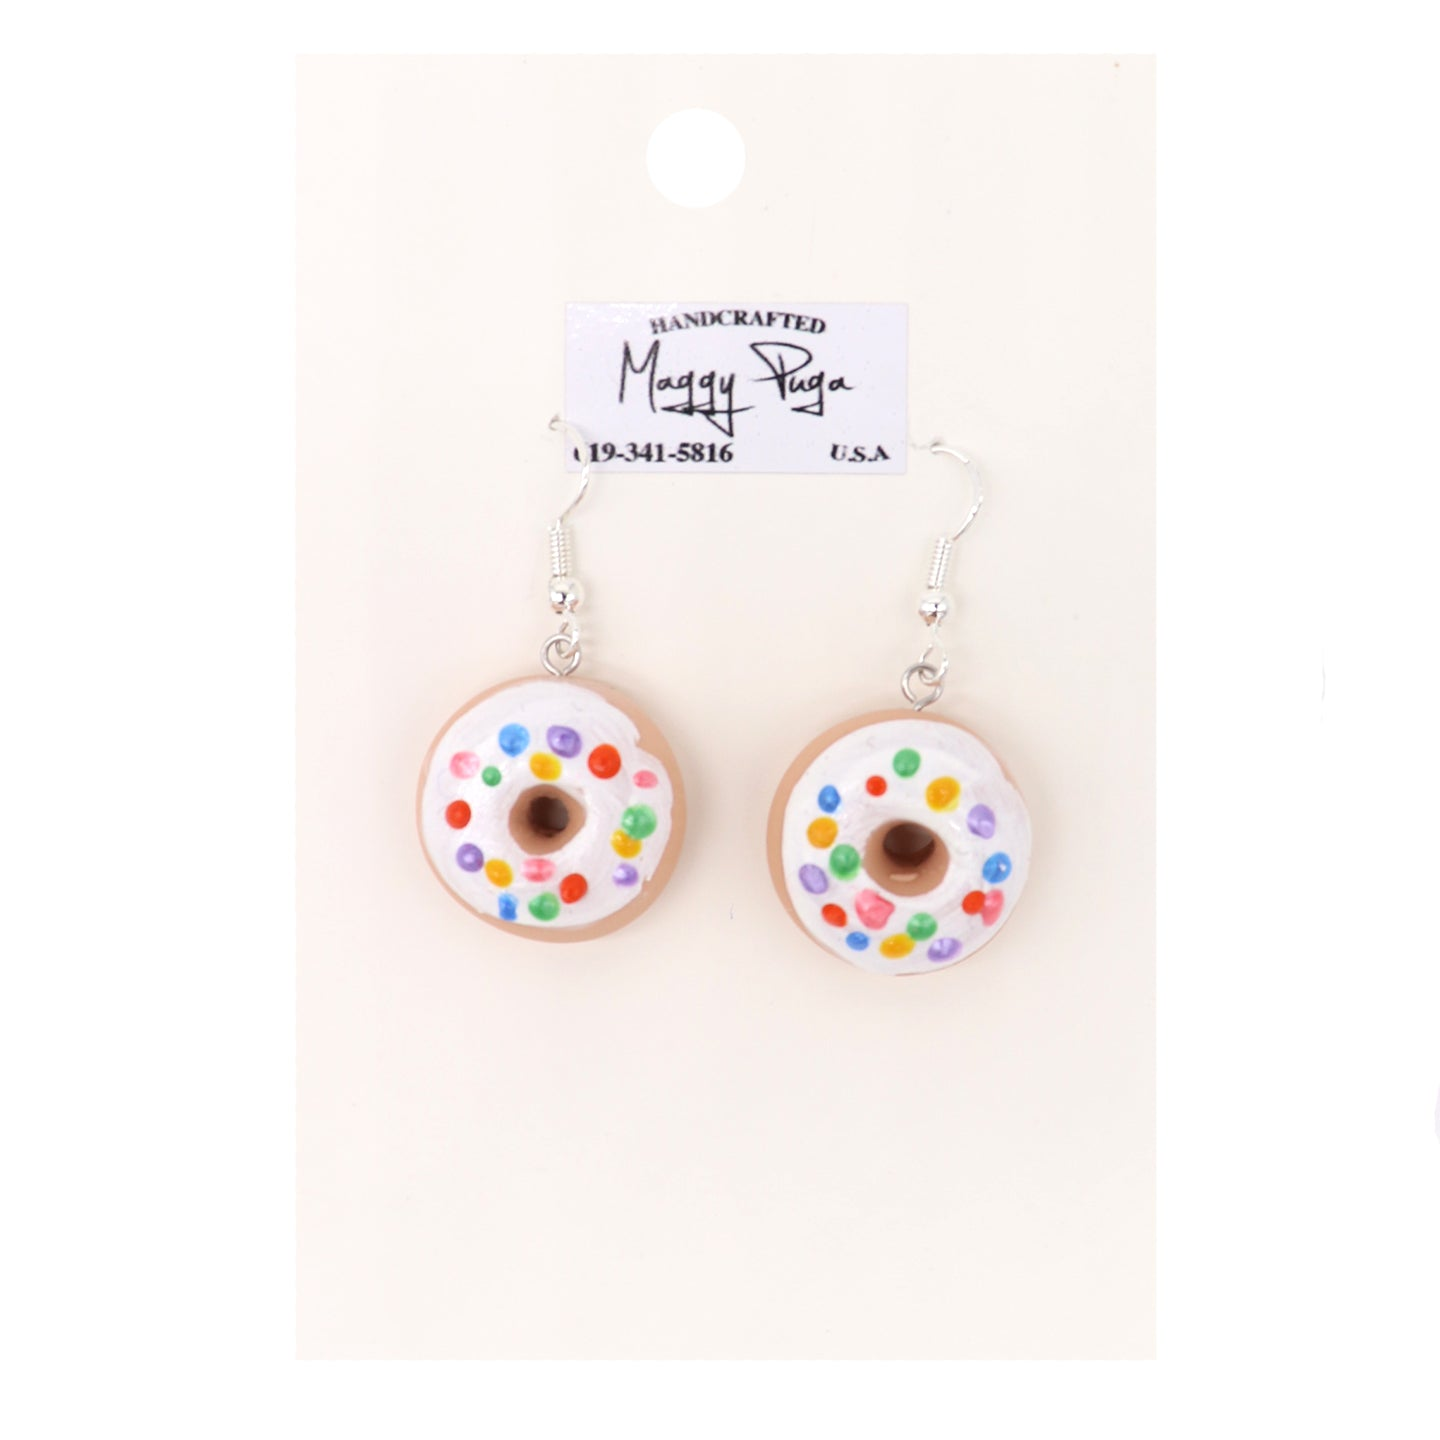 Sprinkle Dounut Earrings handcrafted in the USA by small shop Maggy Puga. Vanilla frosting with sprinkles. Sold by SDTrading Co.